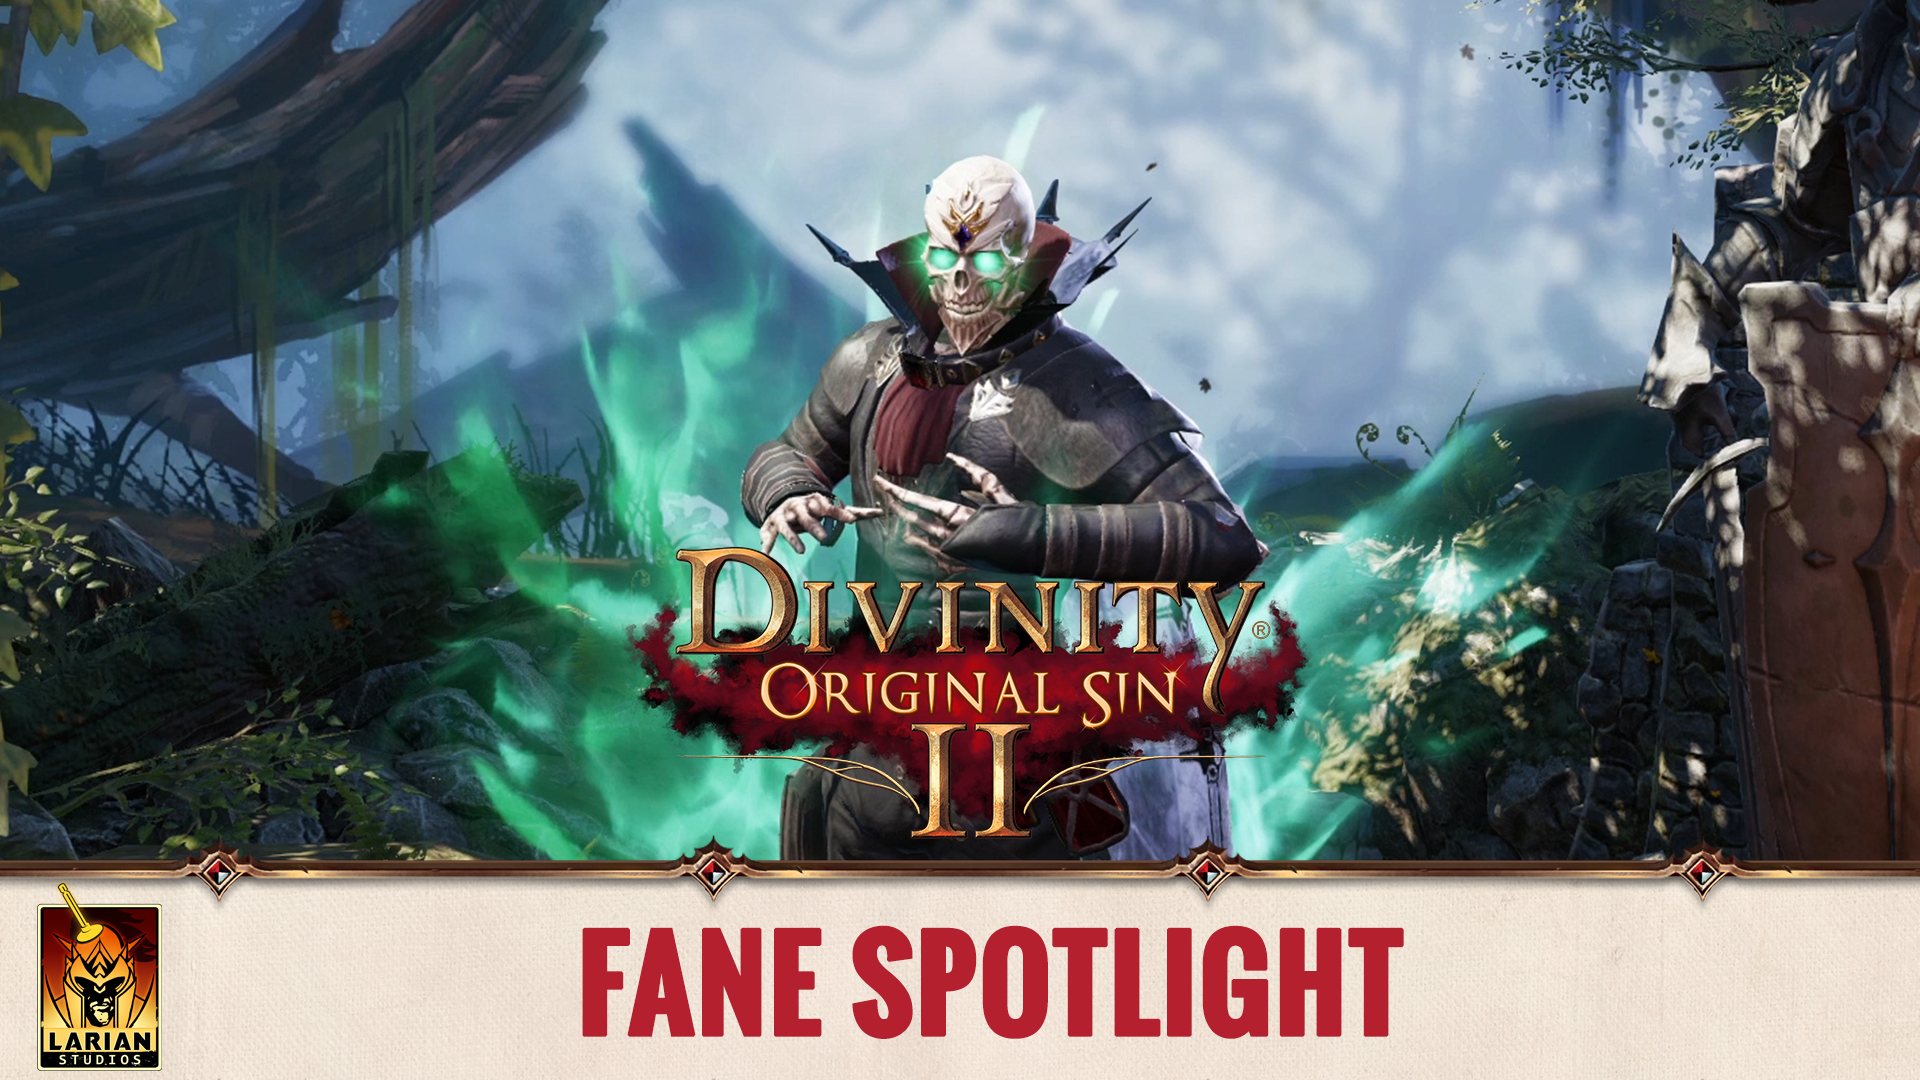 Steam Divinity Original Sin 2 Be Fane The Mysterious